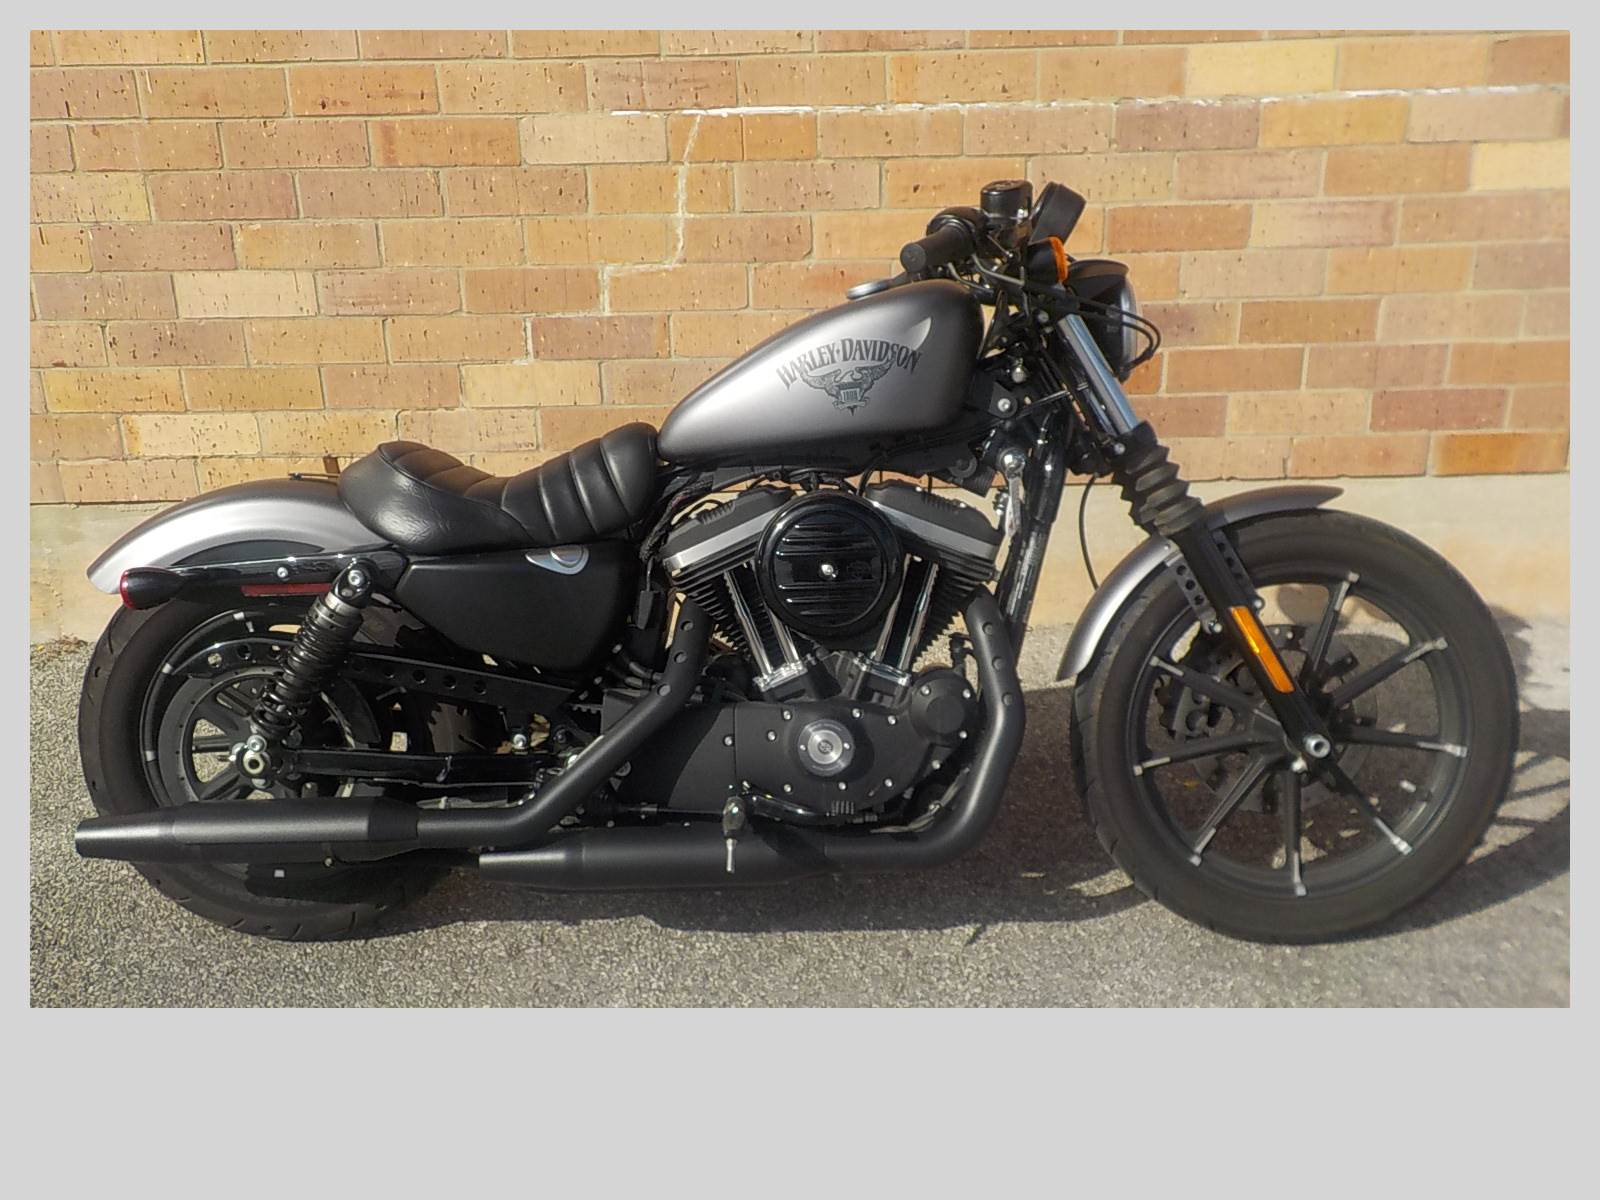 used 2017 harley davidson iron 883 motorcycles in san antonio tx stock number 766. Black Bedroom Furniture Sets. Home Design Ideas